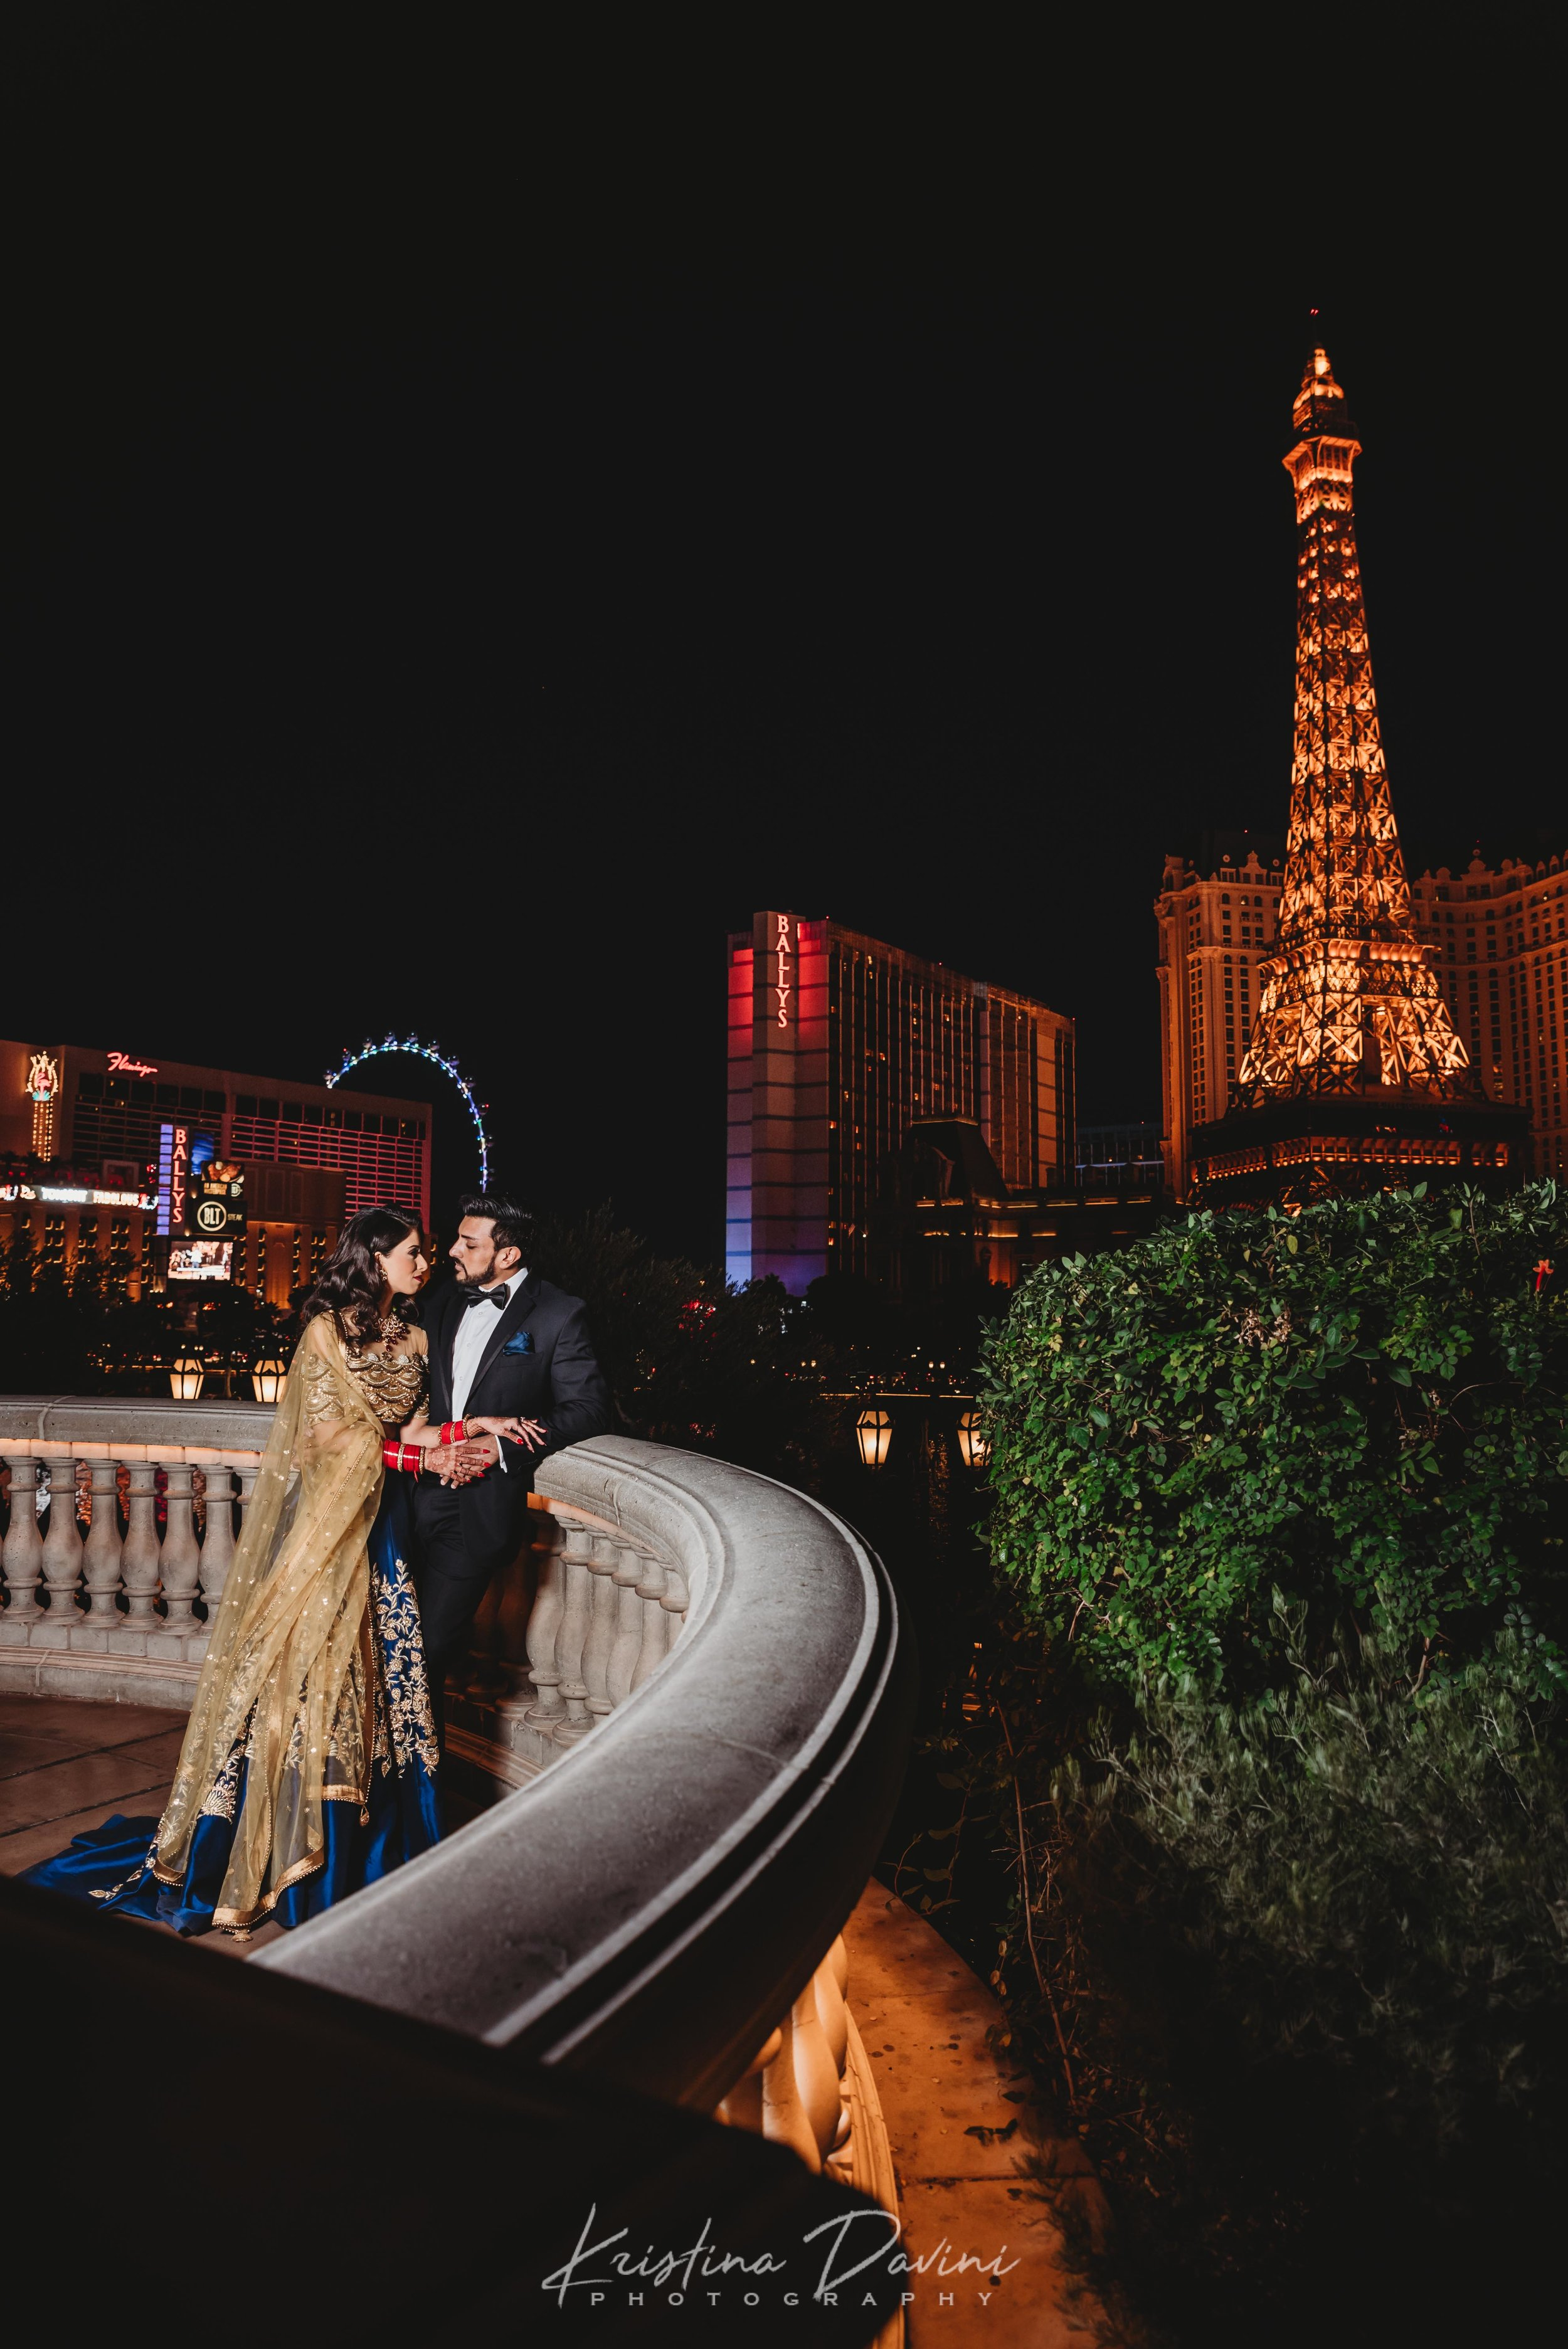 Couple's portraits at Bellagio